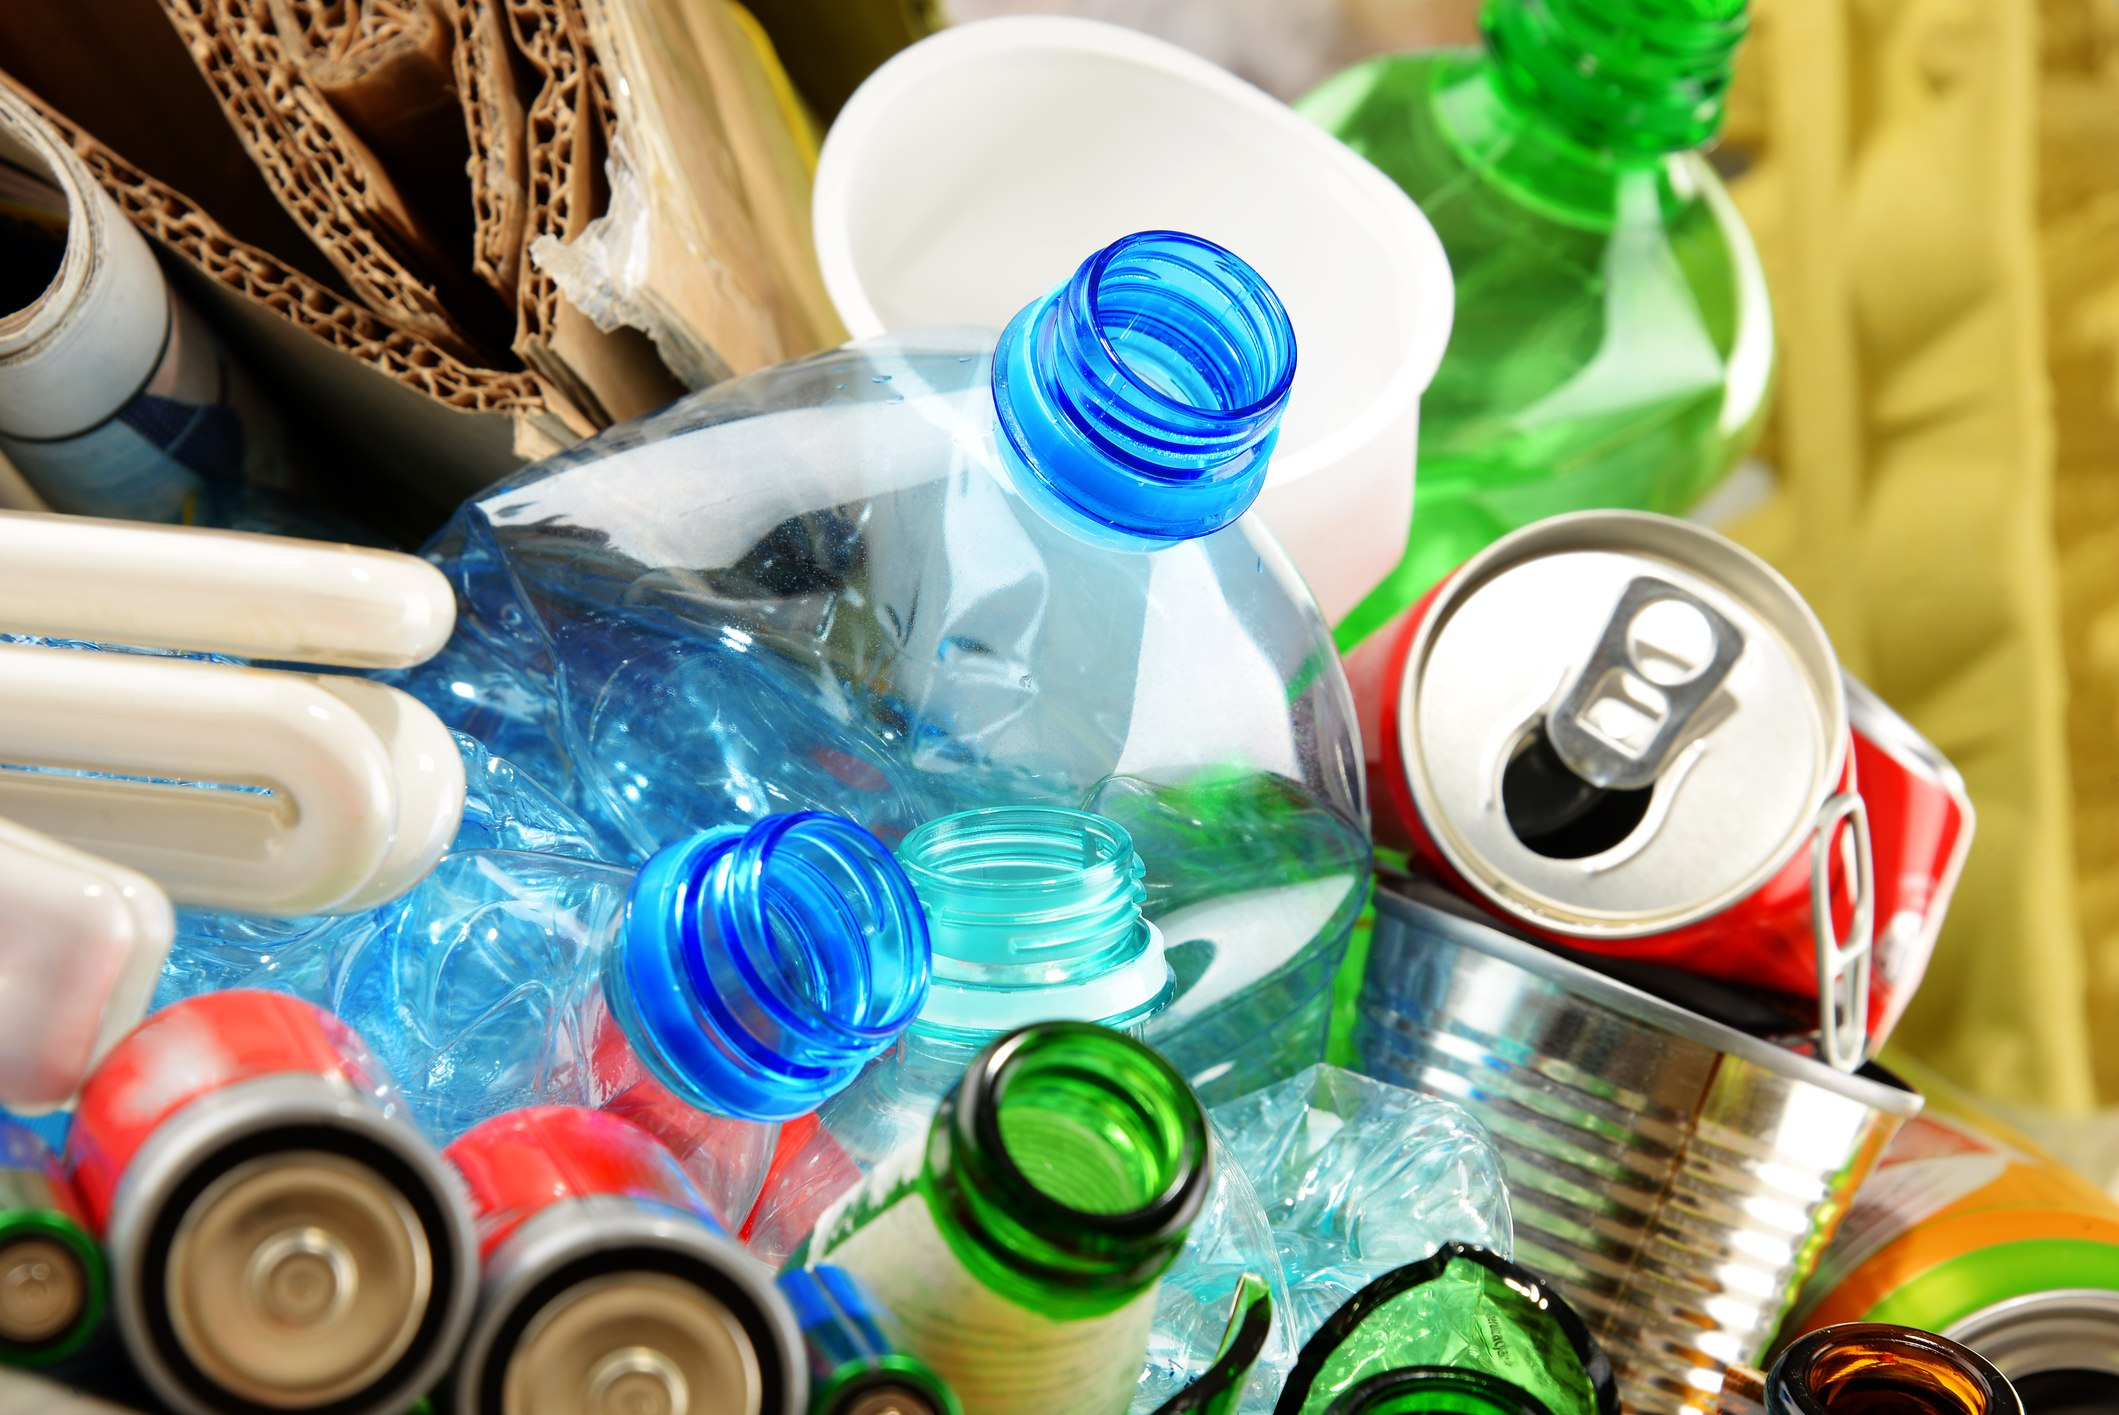 18 Common Items You Should Never Put in the Recycling Bin